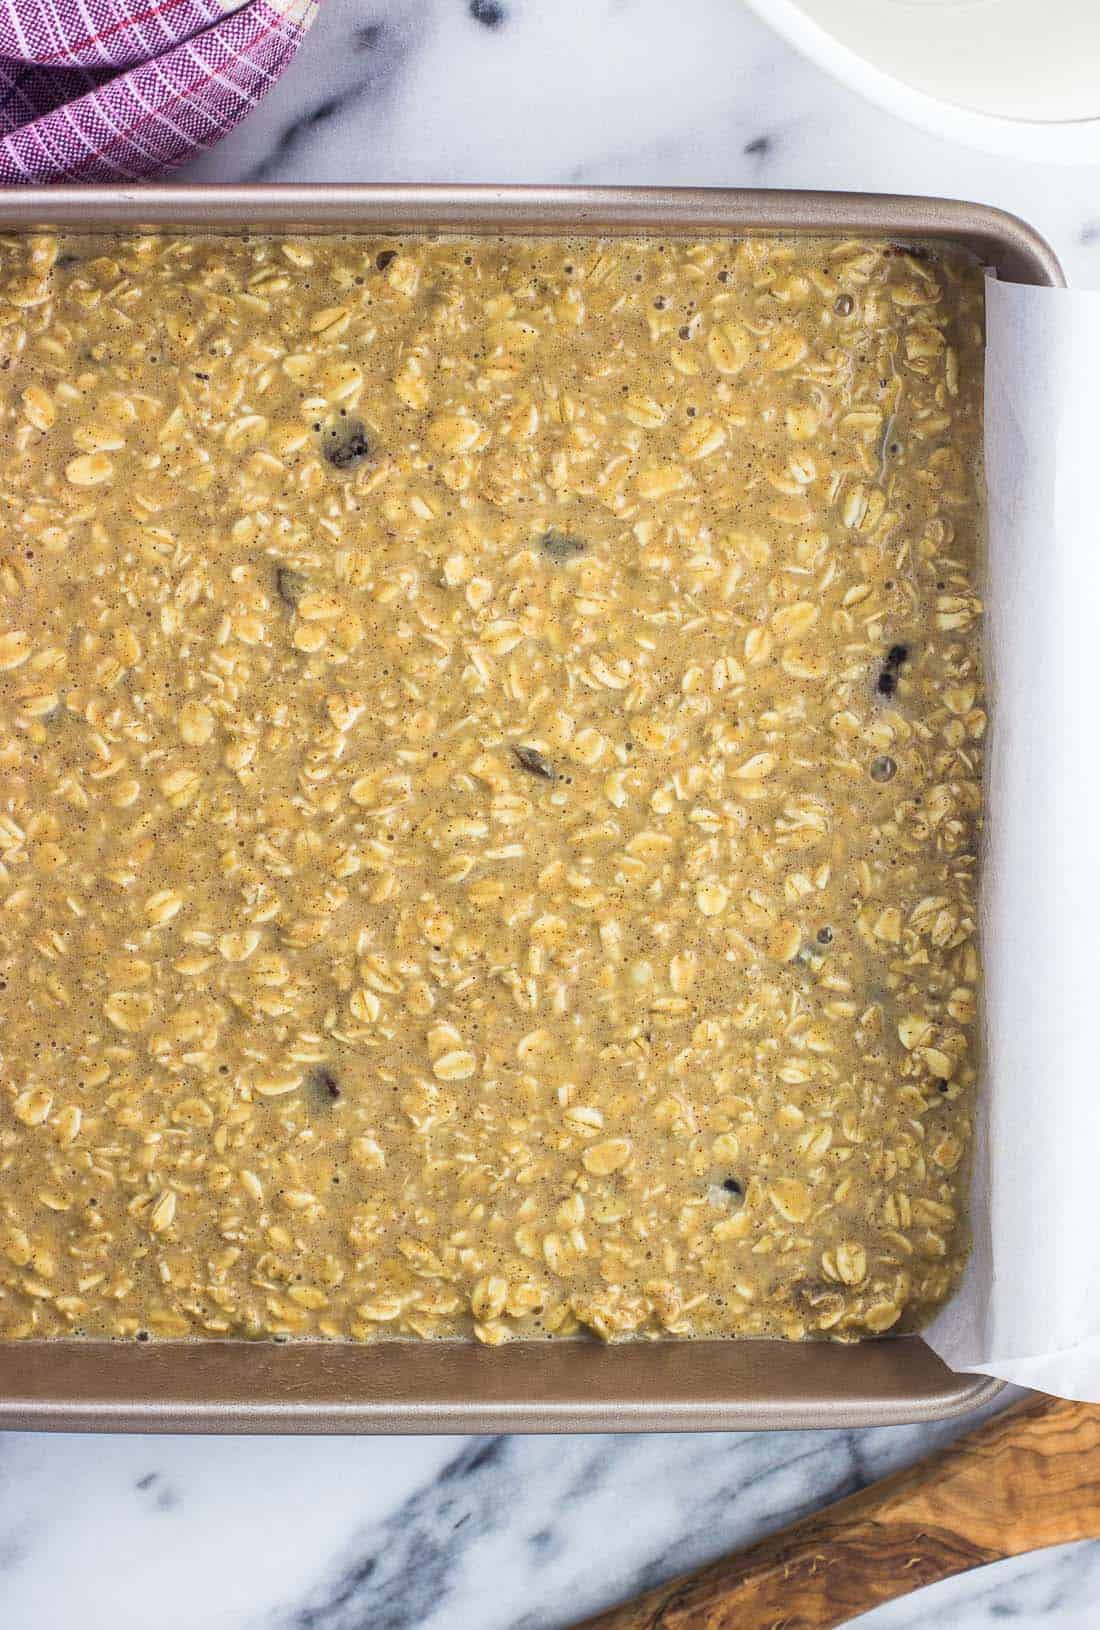 Peanut butter baked oatmeal in a parchment-lined pan before being baked